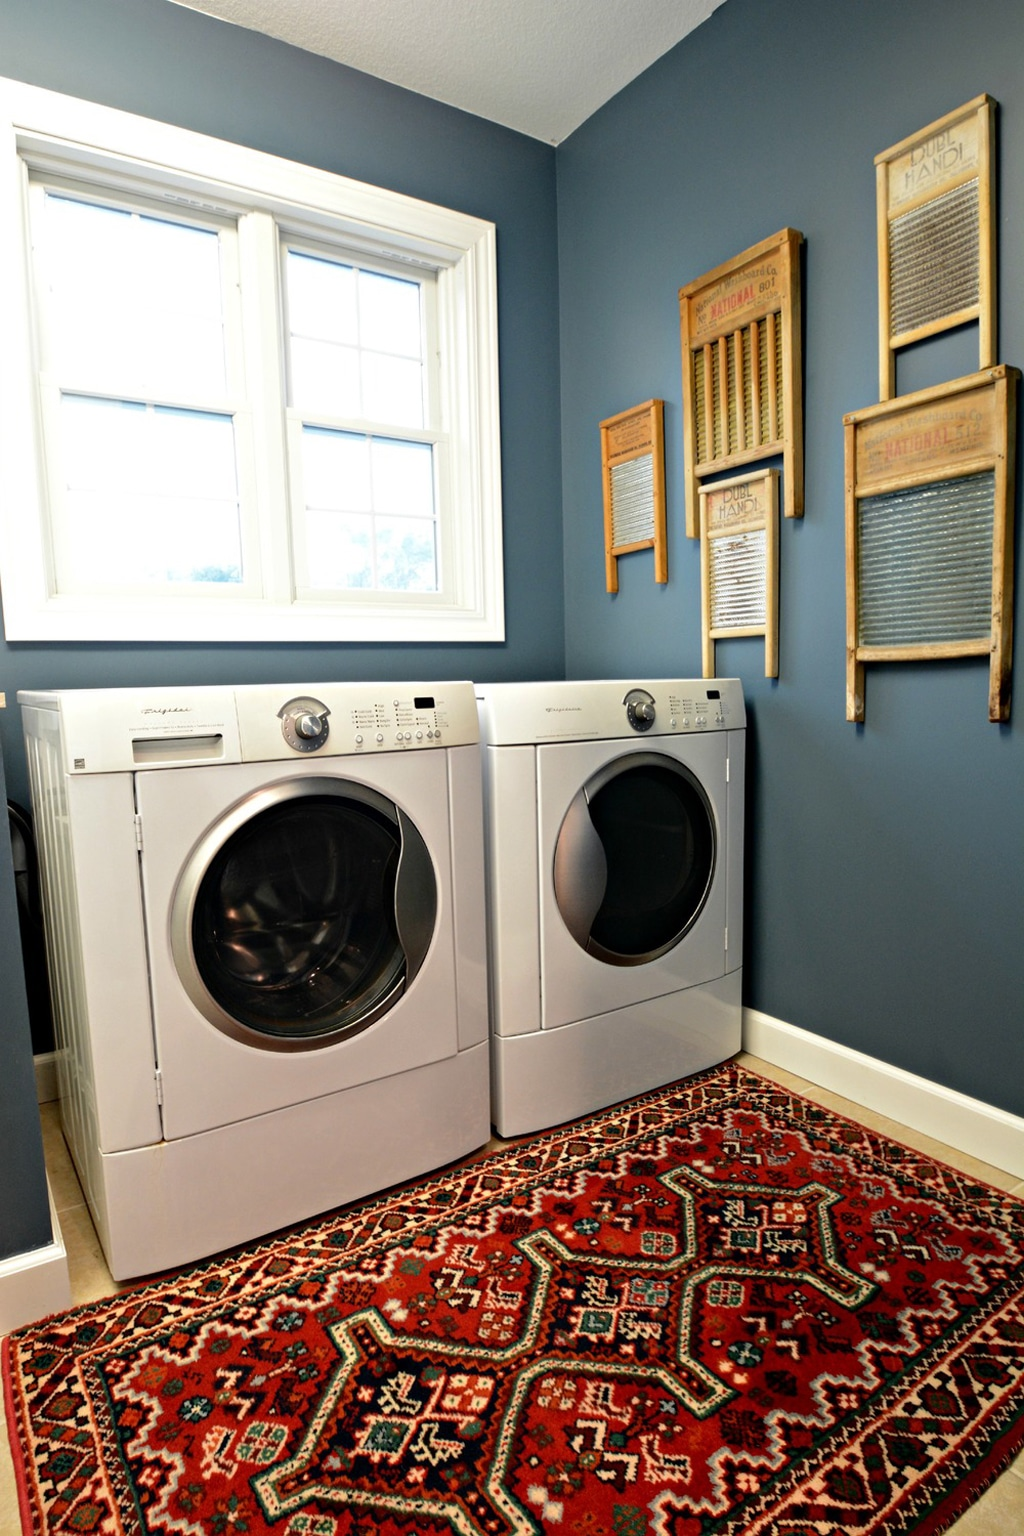 Laundry Room in Smoky Blue from Decor The Dog blog.